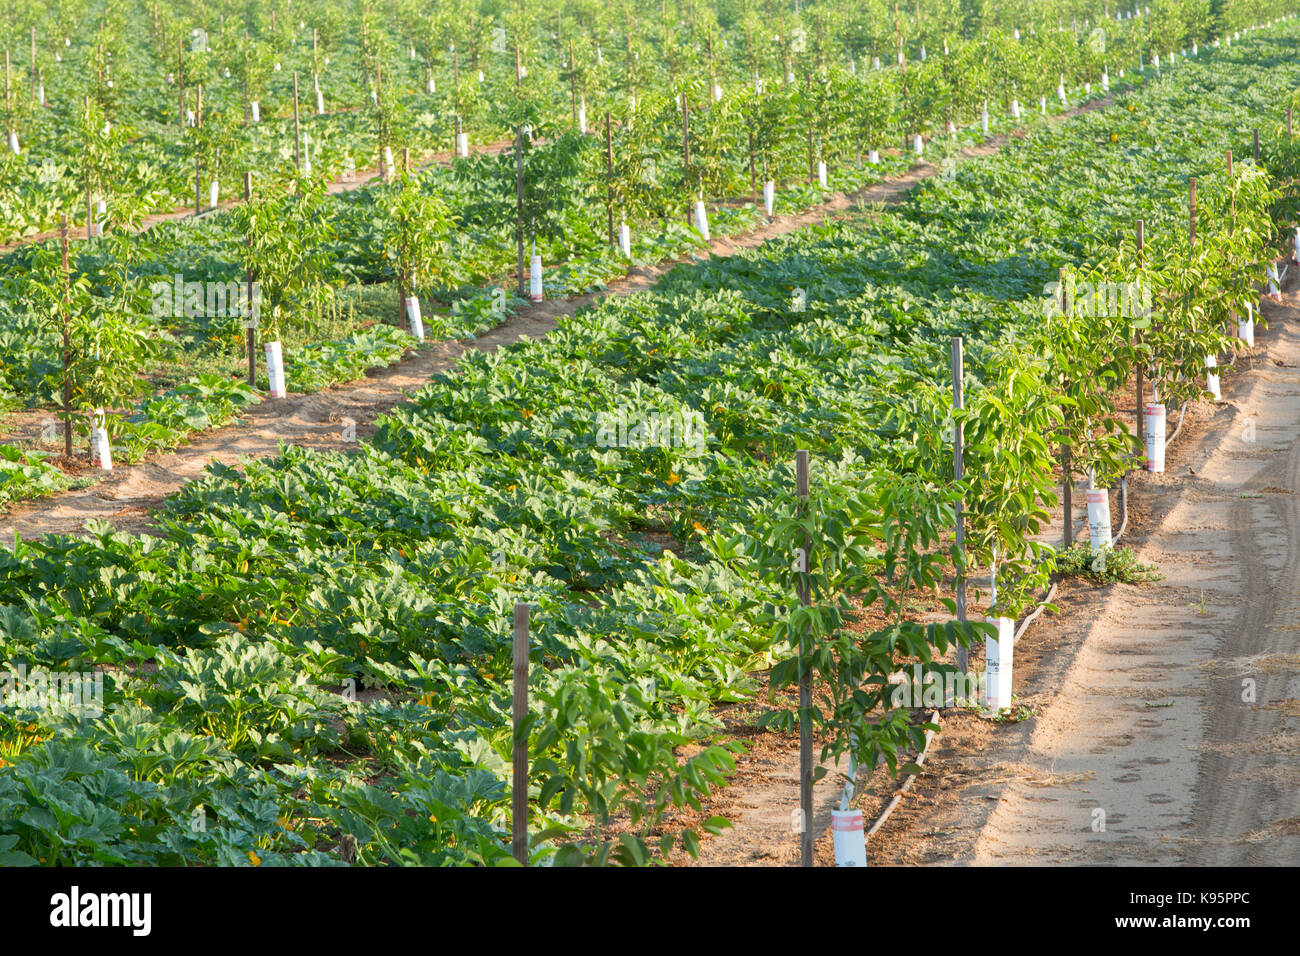 Intercropping, Young English Walnut orchard, Chandler variety Stock